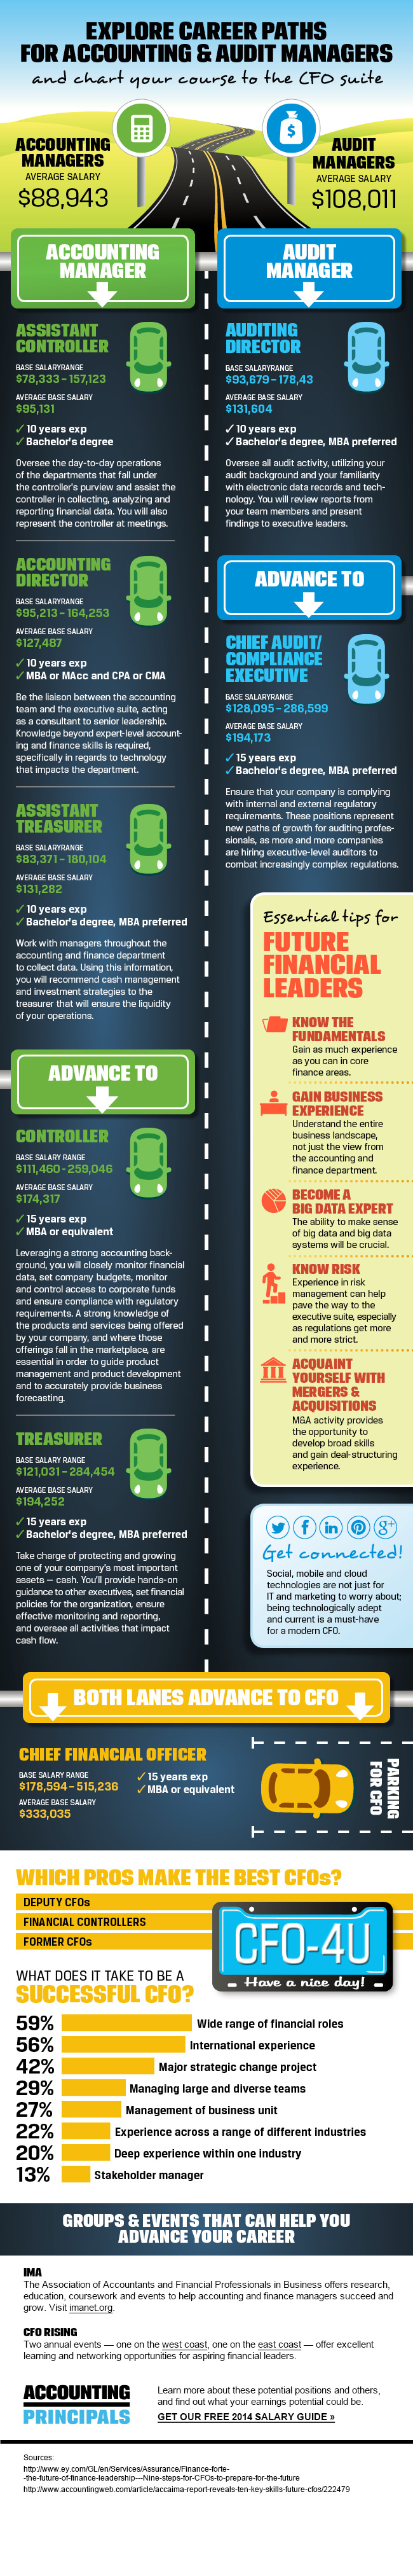 Audit and accounting career paths for managers infographic